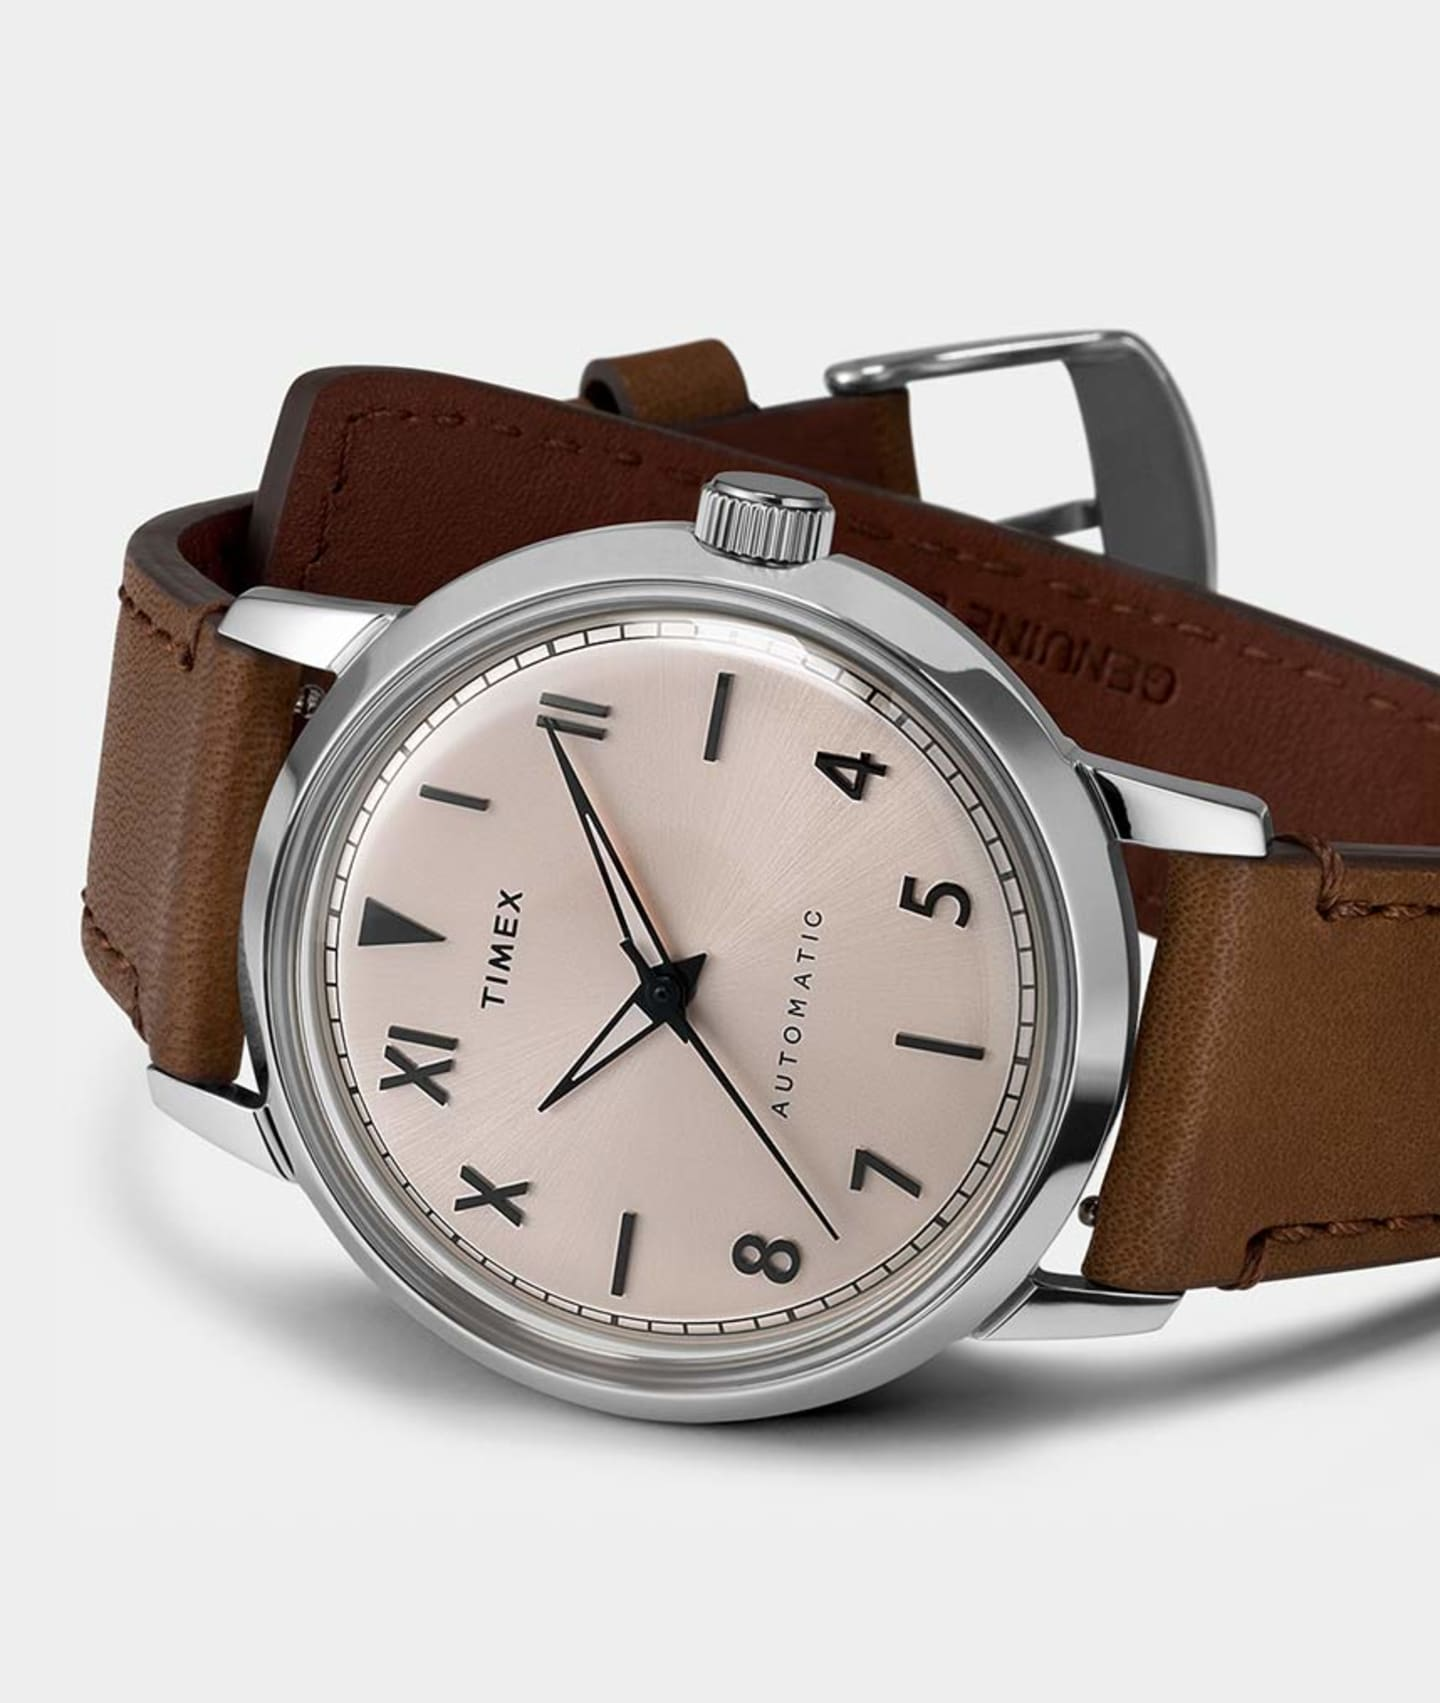 Marlin Automatic CA Watch.